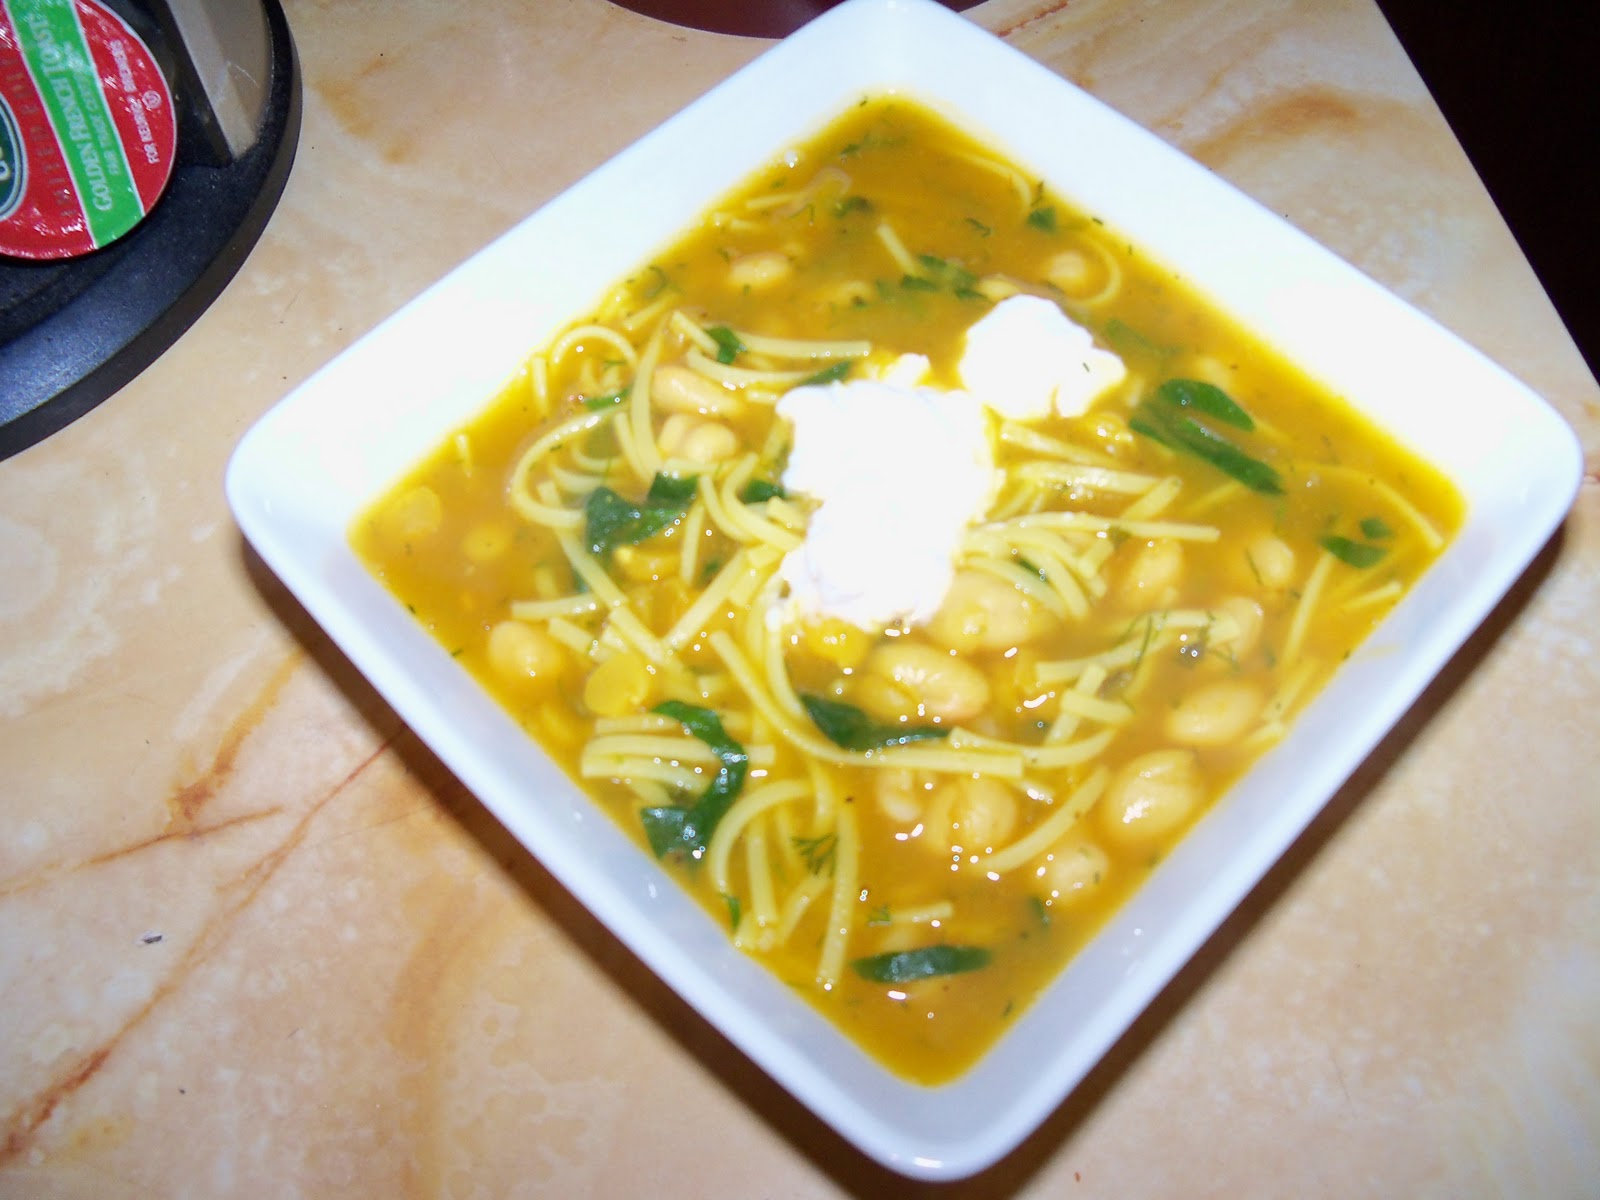 Life on the Vegan Edge: New Year Noodle Soup